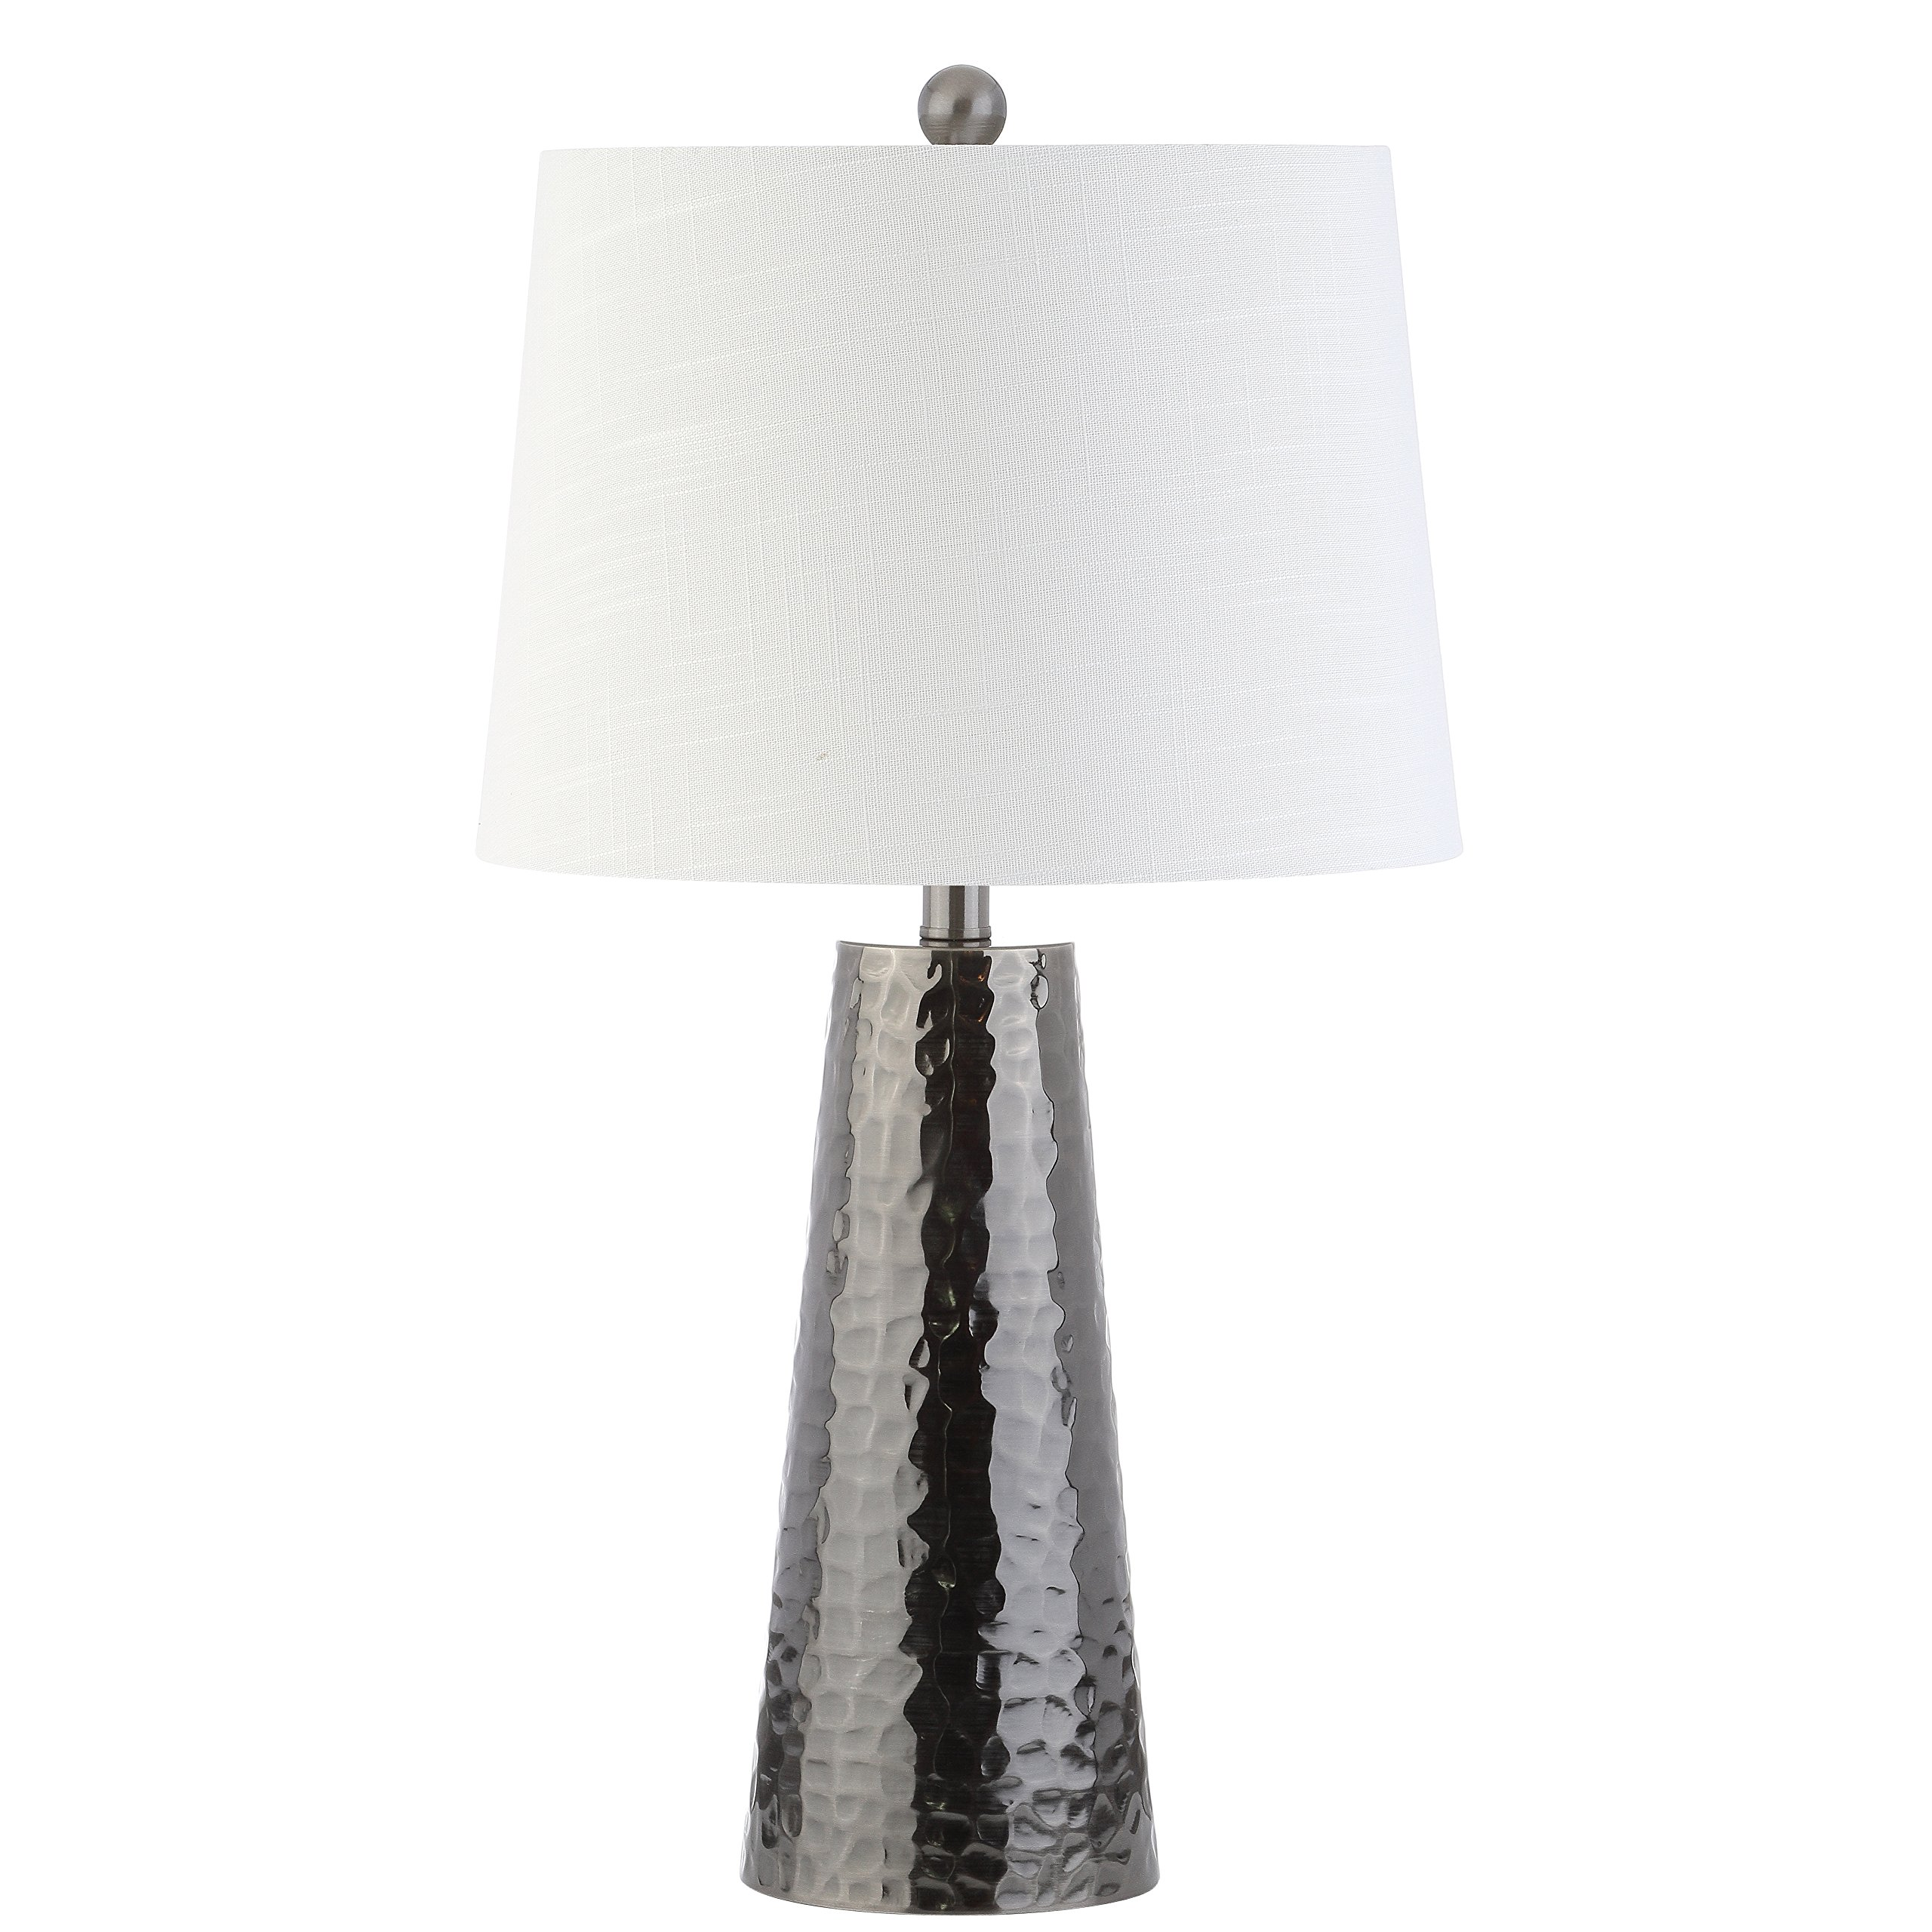 JONATHAN Y JYL3024A Table Lamp, 14'' x 26'' x 14'', Black Nickel with White Shade